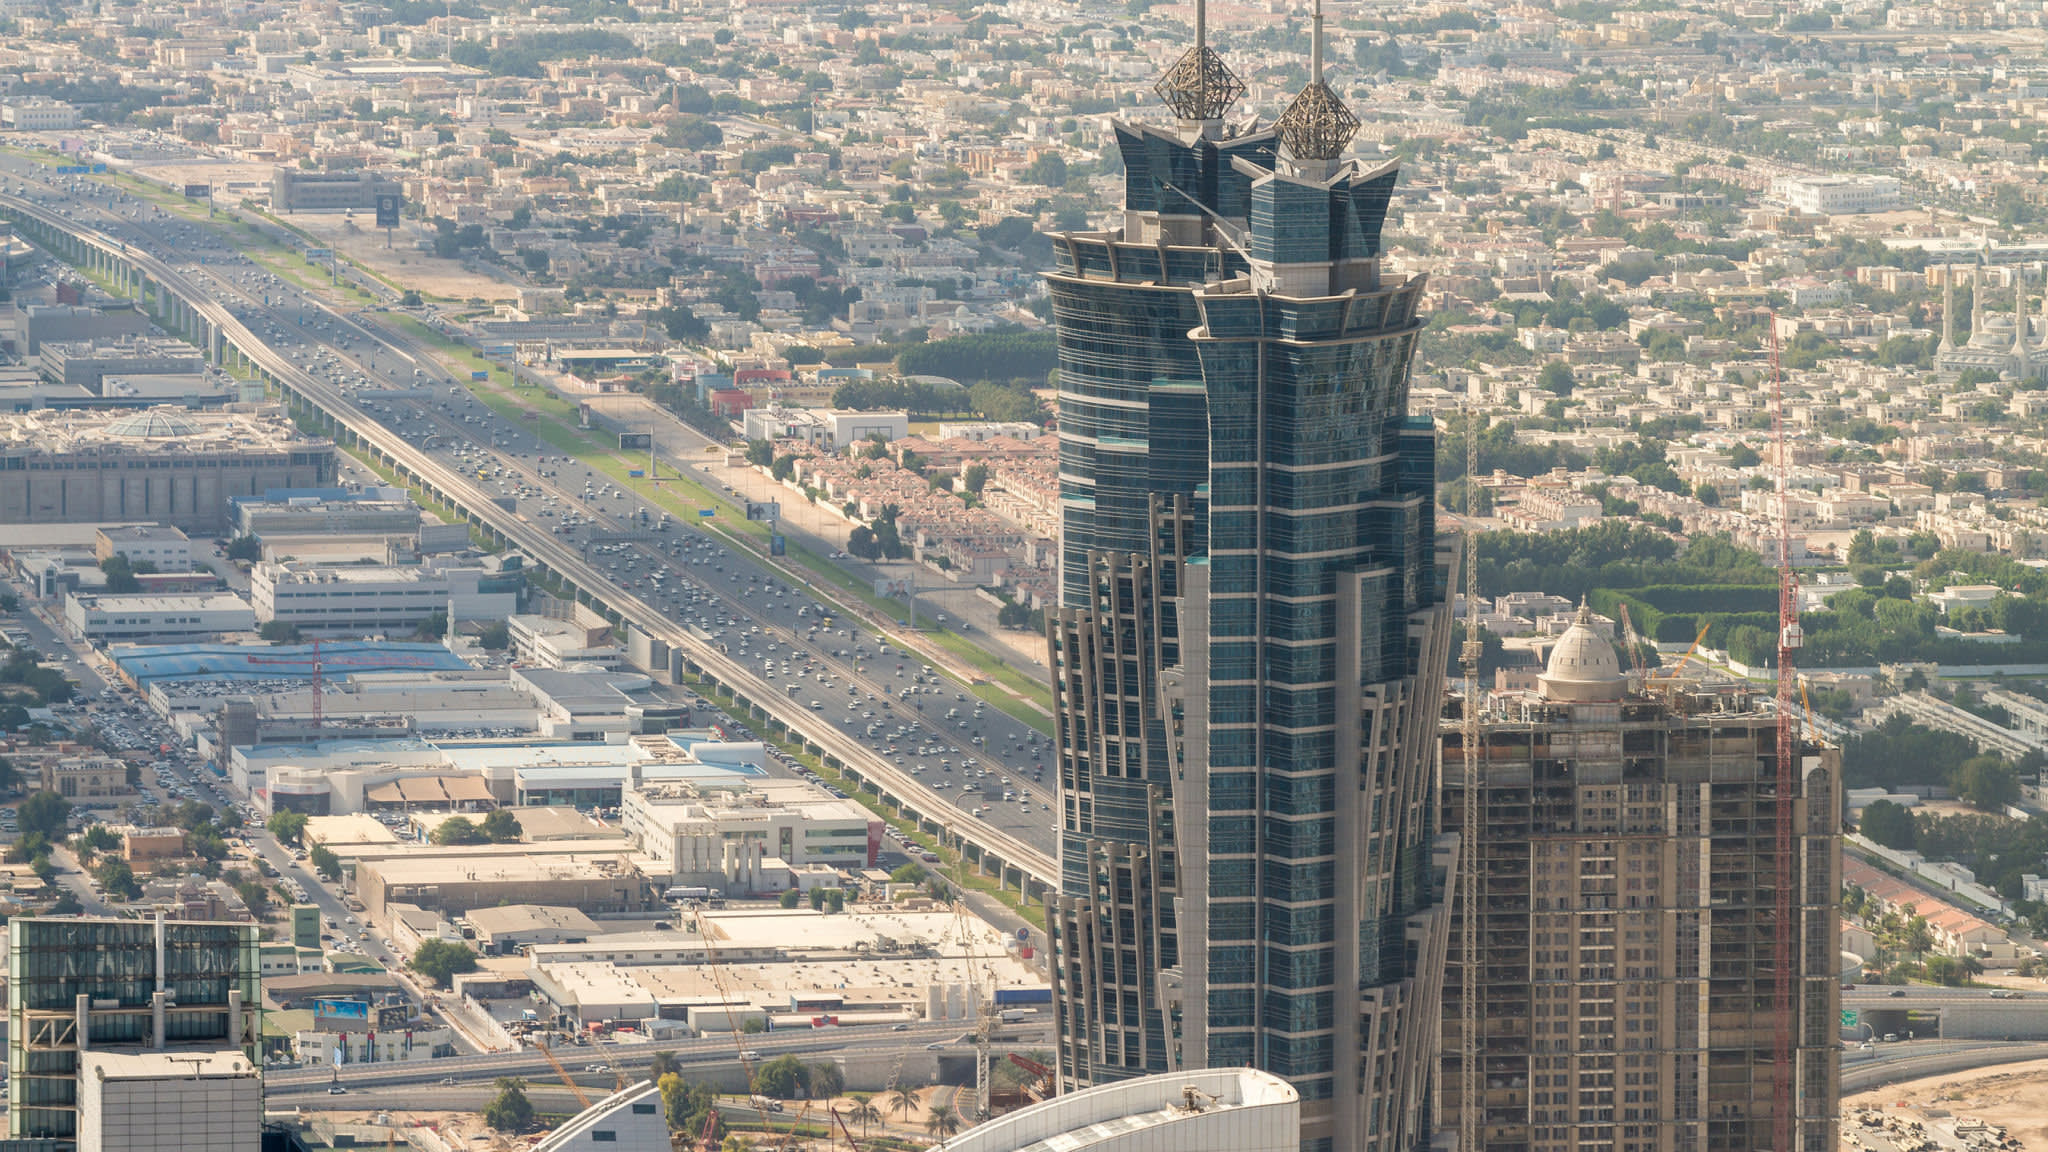 Dubai's message to its people: be tolerant, or else | Financial Times